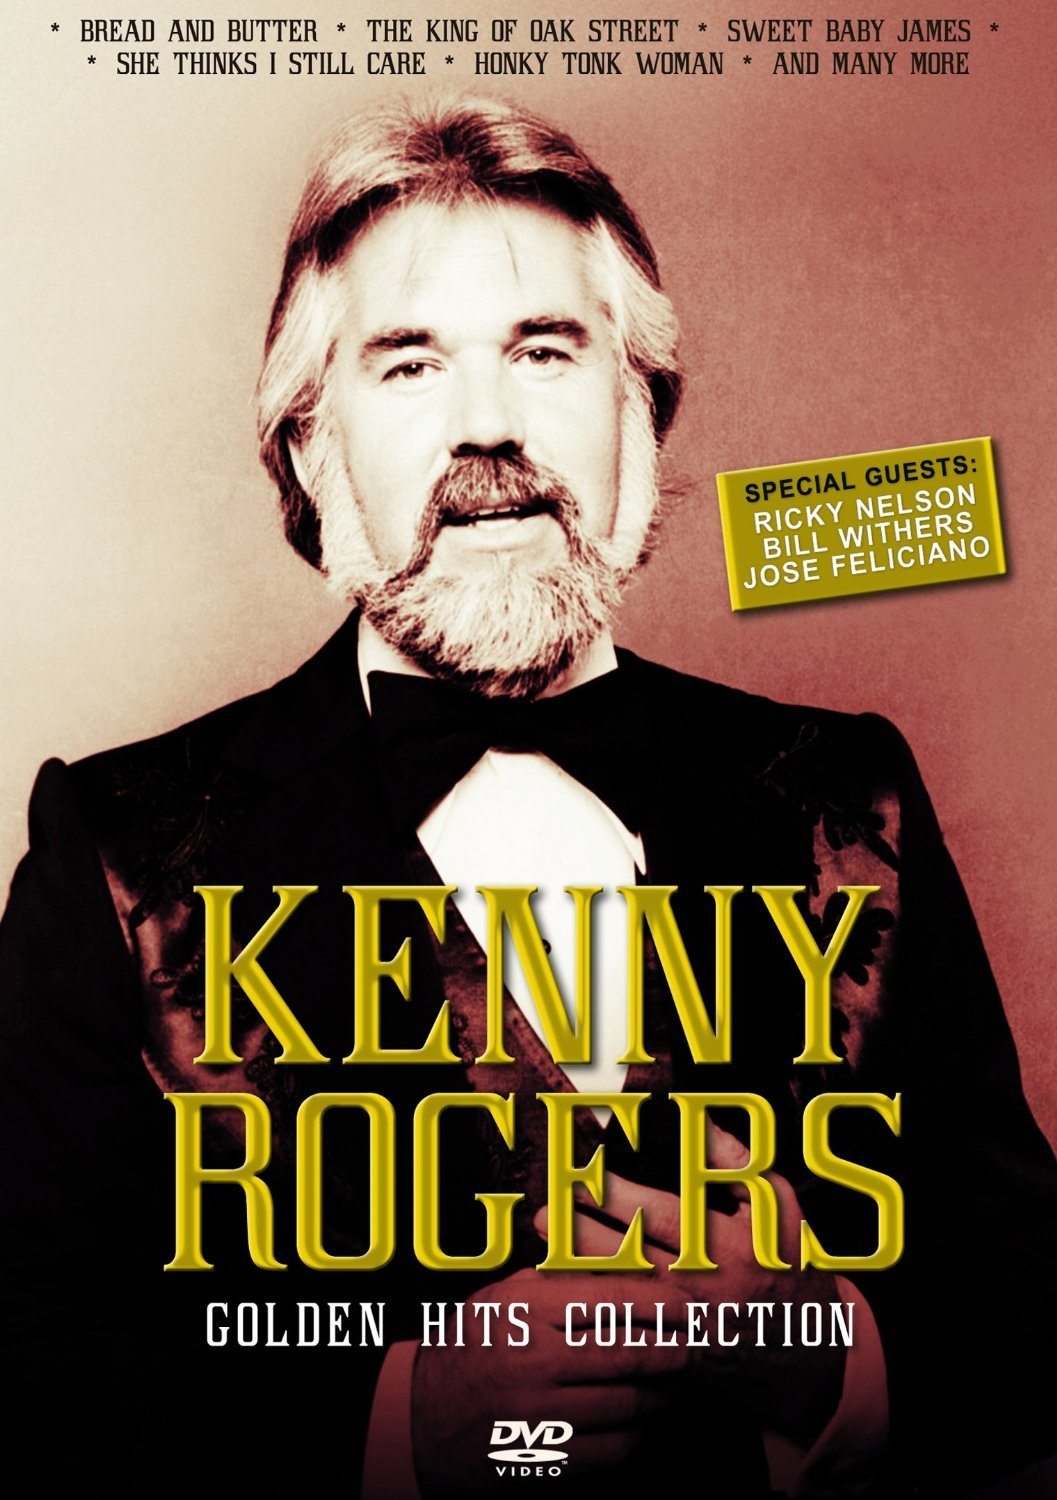 Kenny Rogers Christmas Album Art | www.topsimages.com